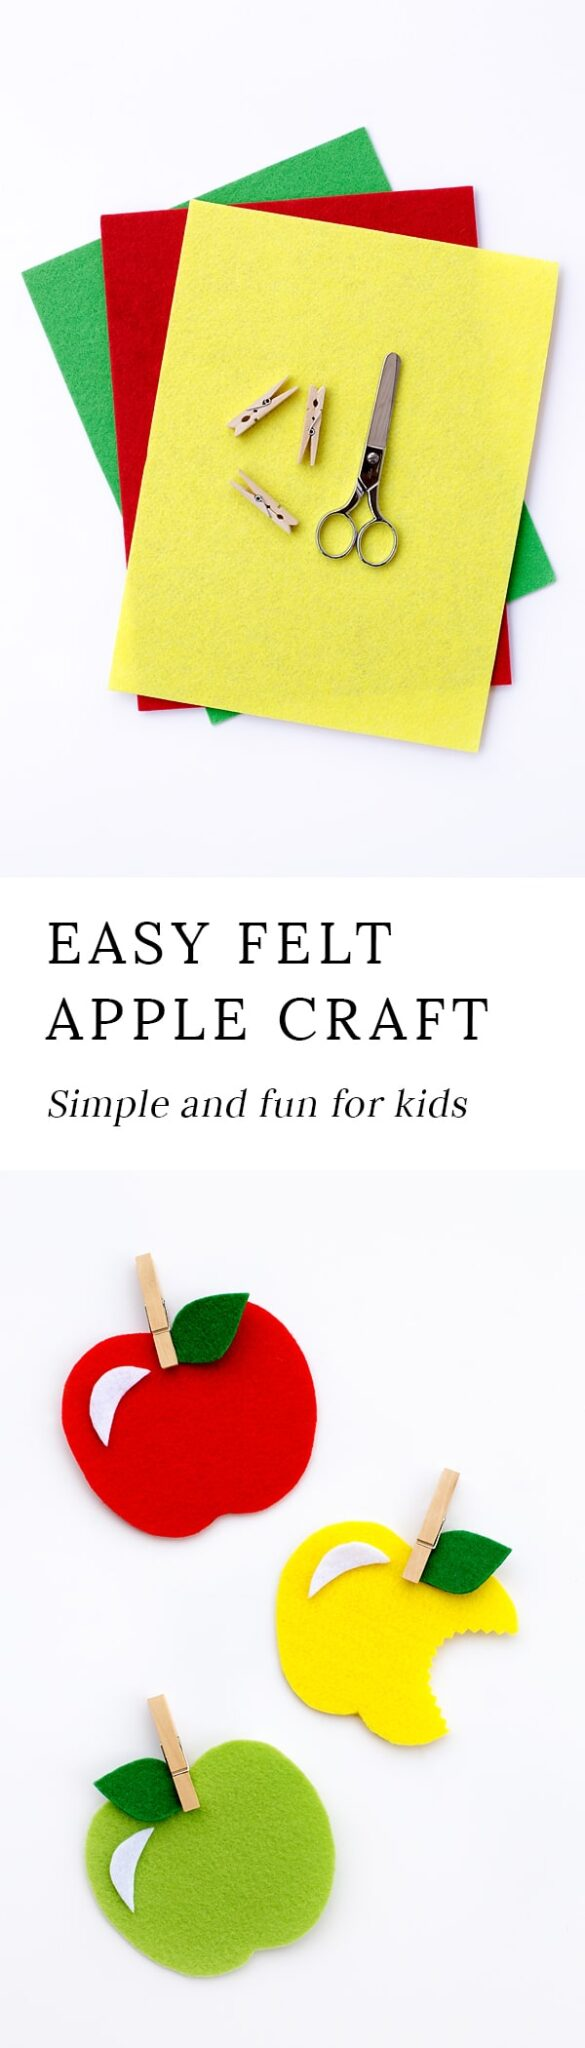 Kids of all ages will have fun creating colorful felt apples for fall. This post includes a free printable apple template, making it perfect for home or school. #applecraft #fallcraft via @firefliesandmudpies